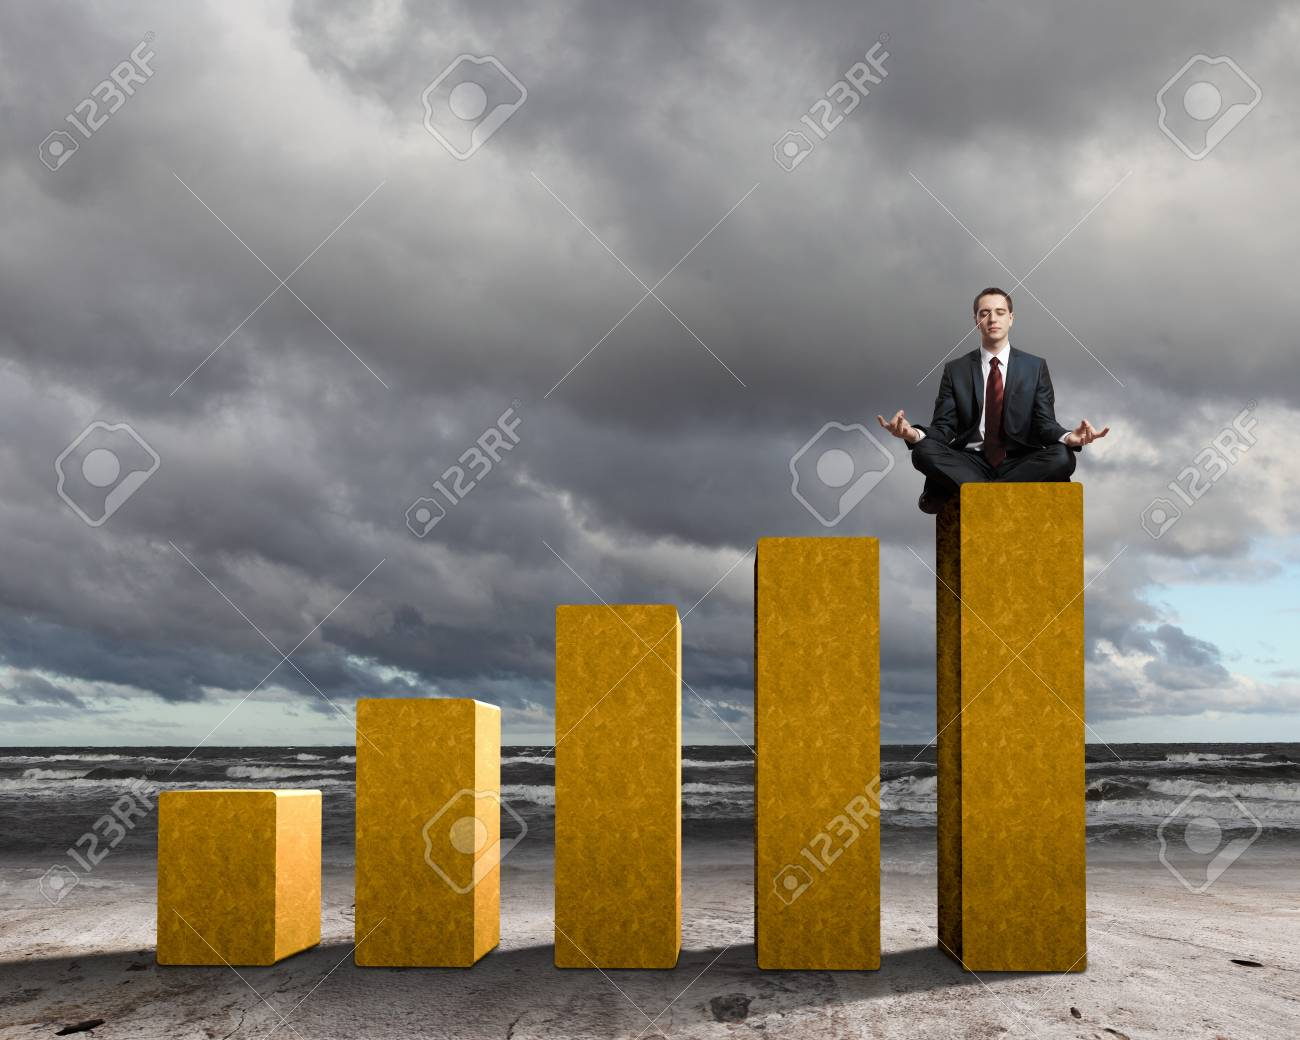 Business person on a graph, representing success and growth Stock Photo - 17869749